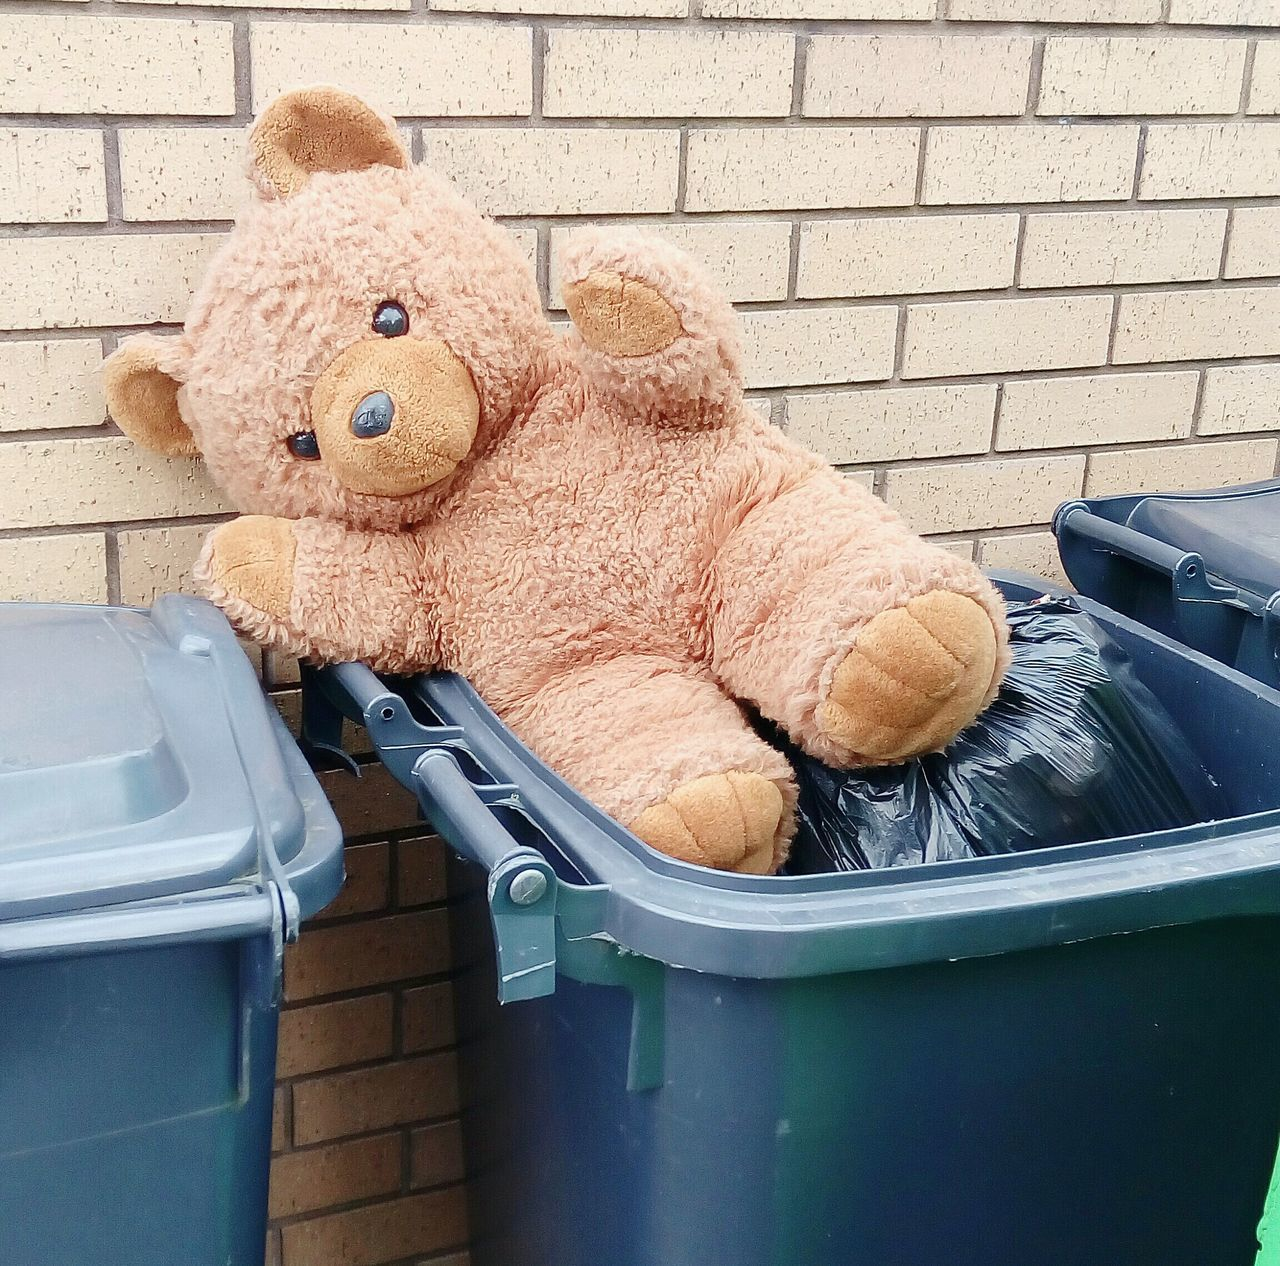 Hello World Check This Out Ted has been left in Dustbin looks like no Ted3 Teddylove Brick Wall